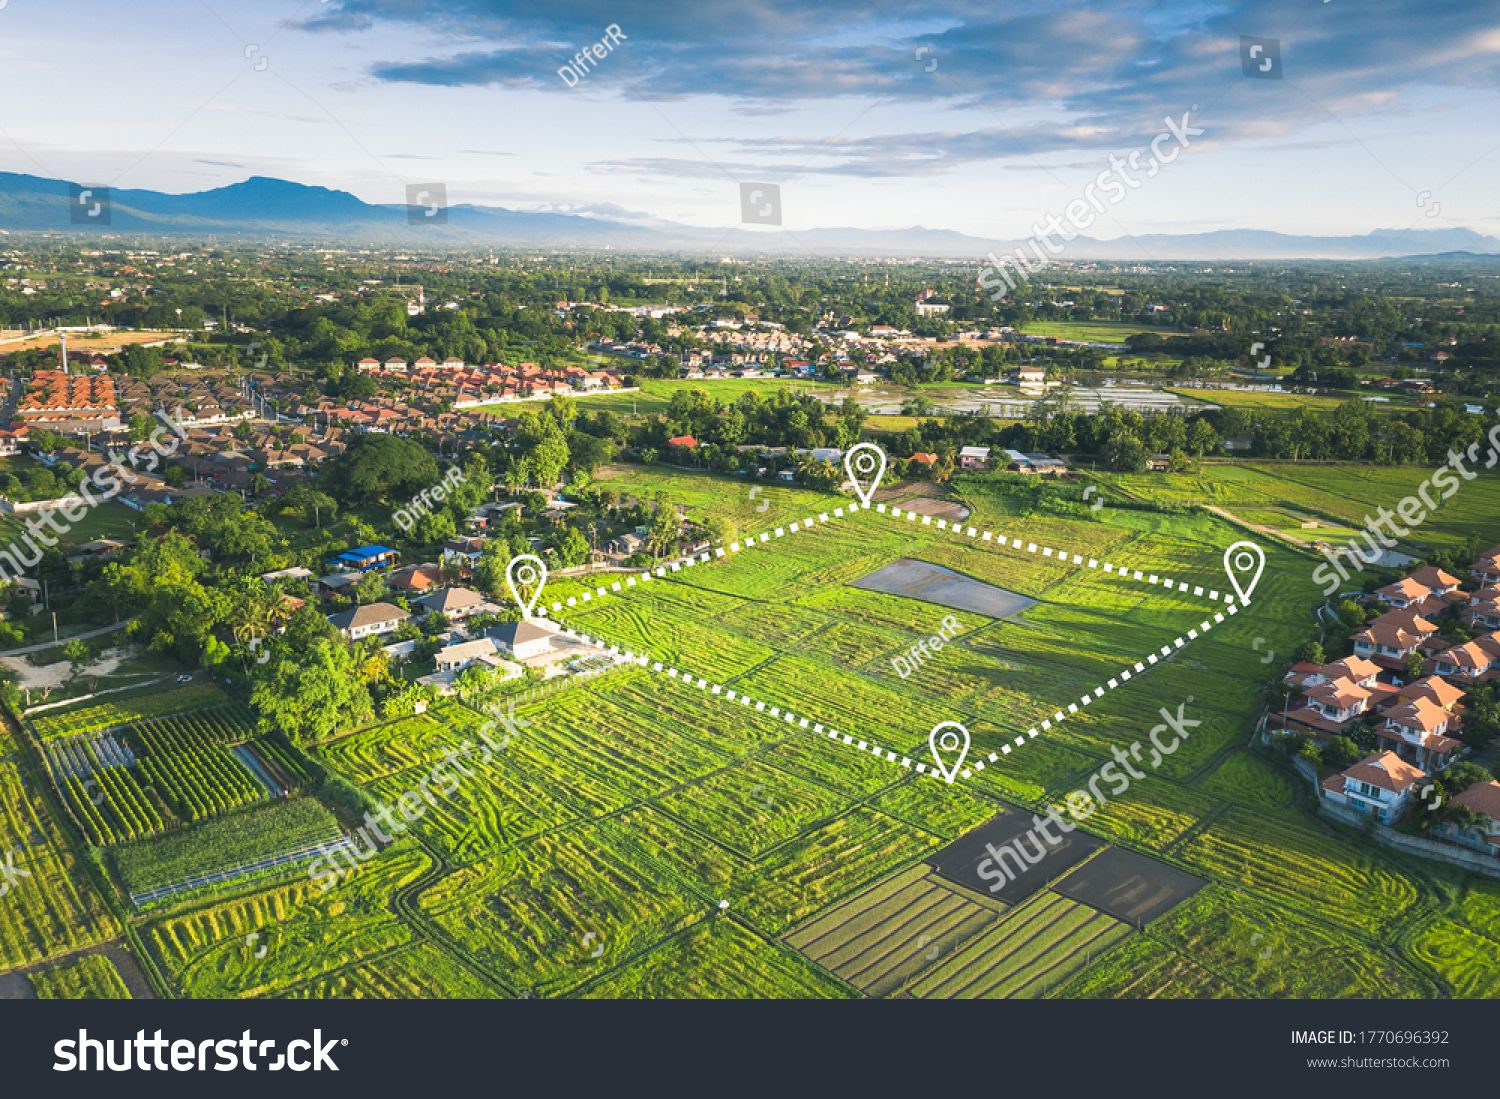 Land plot in aerial view. Include landscape, real estate, green field, agricultural plant, pin location icon. For housing subdivision, residential, development, owned, sale, rent, buy or investment. #1770696392